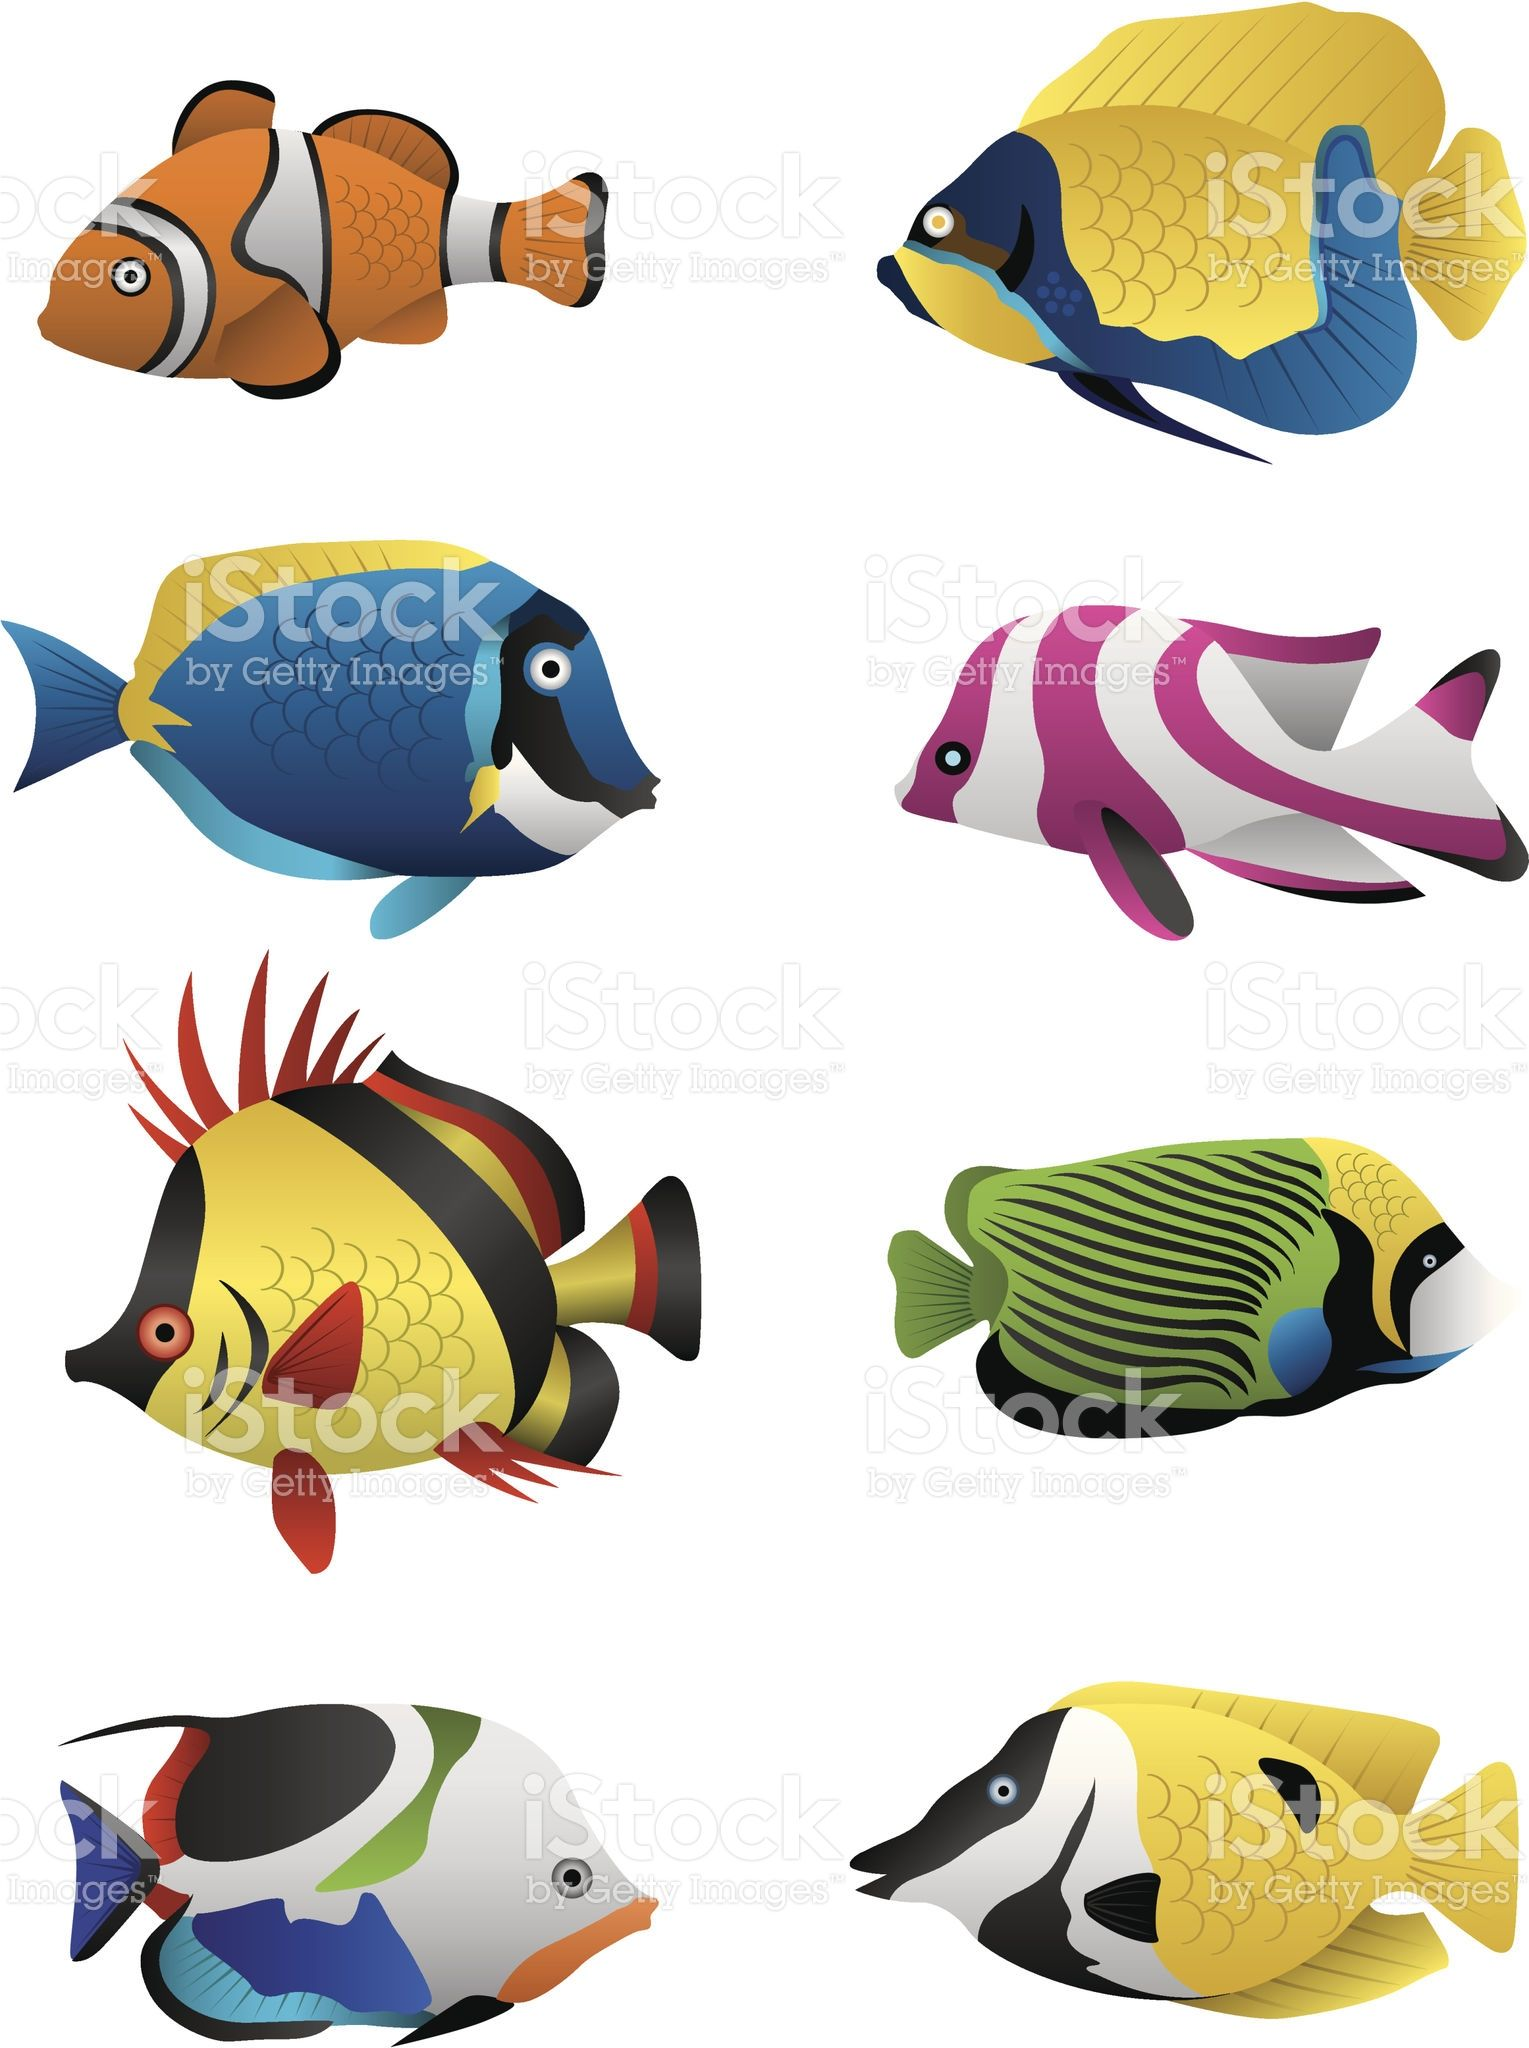 A colorful assortment of tropical fish illustrated in for Poisson exotique en ligne